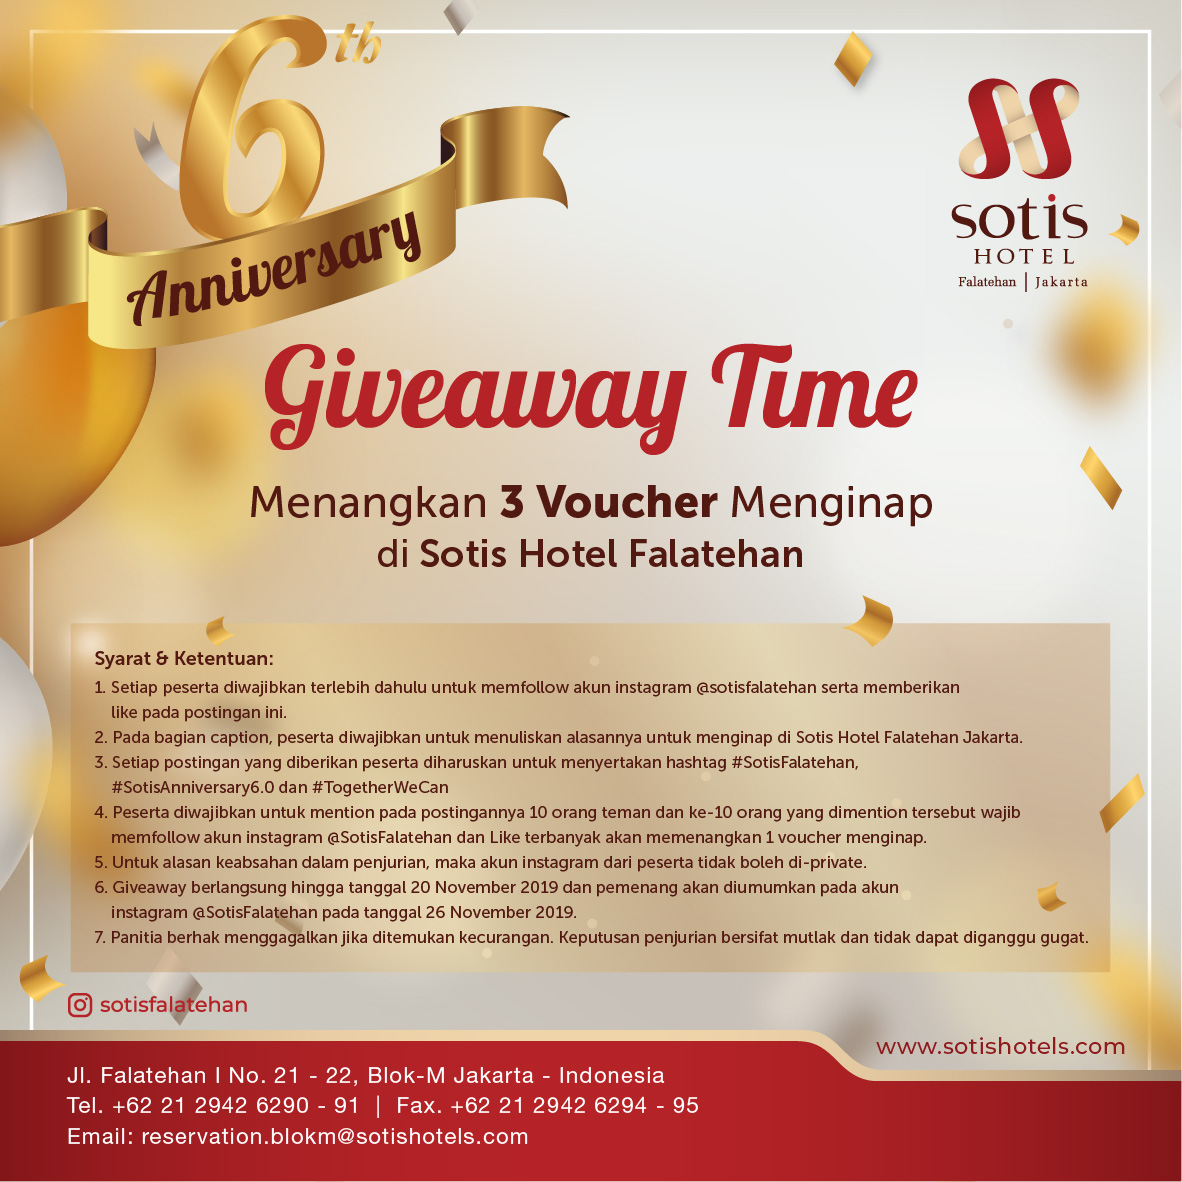 GIVEAWAY VOUCHER - 6TH ANNIVERSARY OF SOTIS HOTEL FALATEHAN JAKARTA